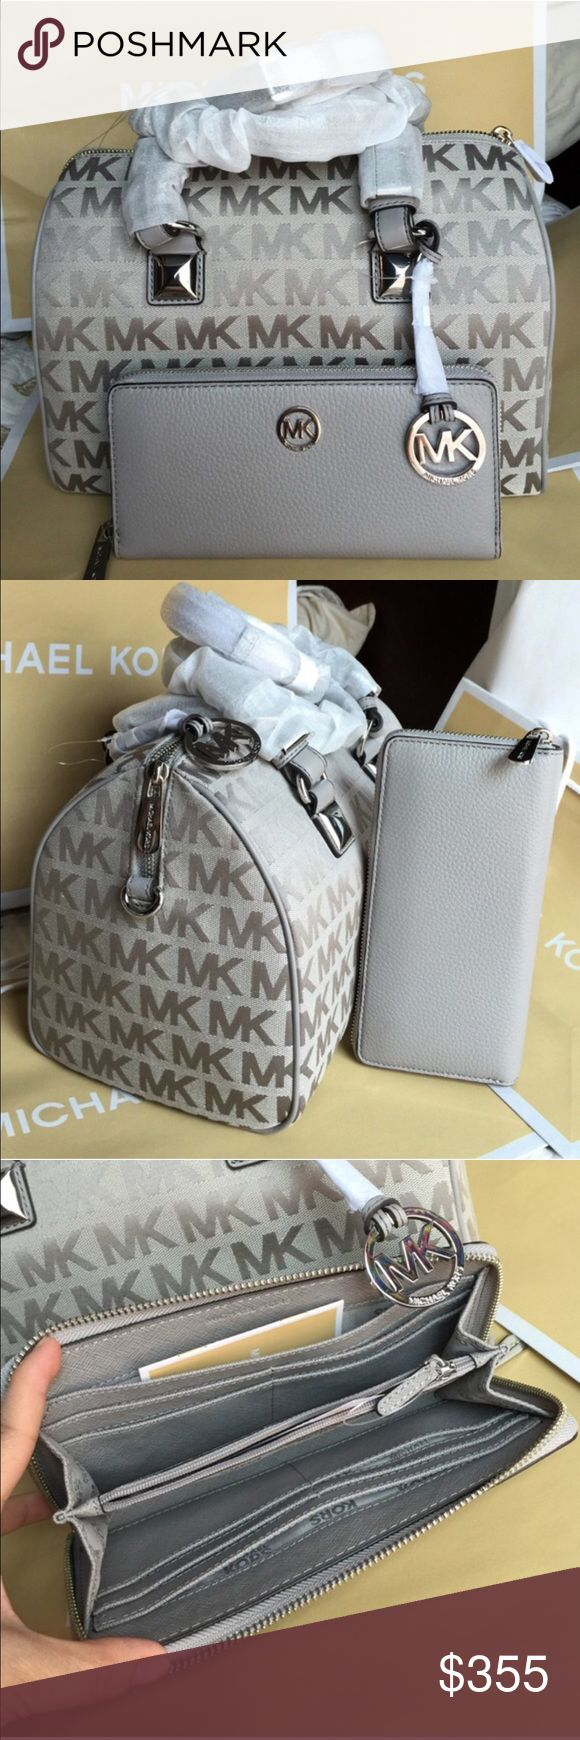 Michael Kors Purse & Wallet 100% Authentic Michael Kors Purse, and Wallet both brand new with tag!Grey color. Michael Kors Bags Crossbody Bags